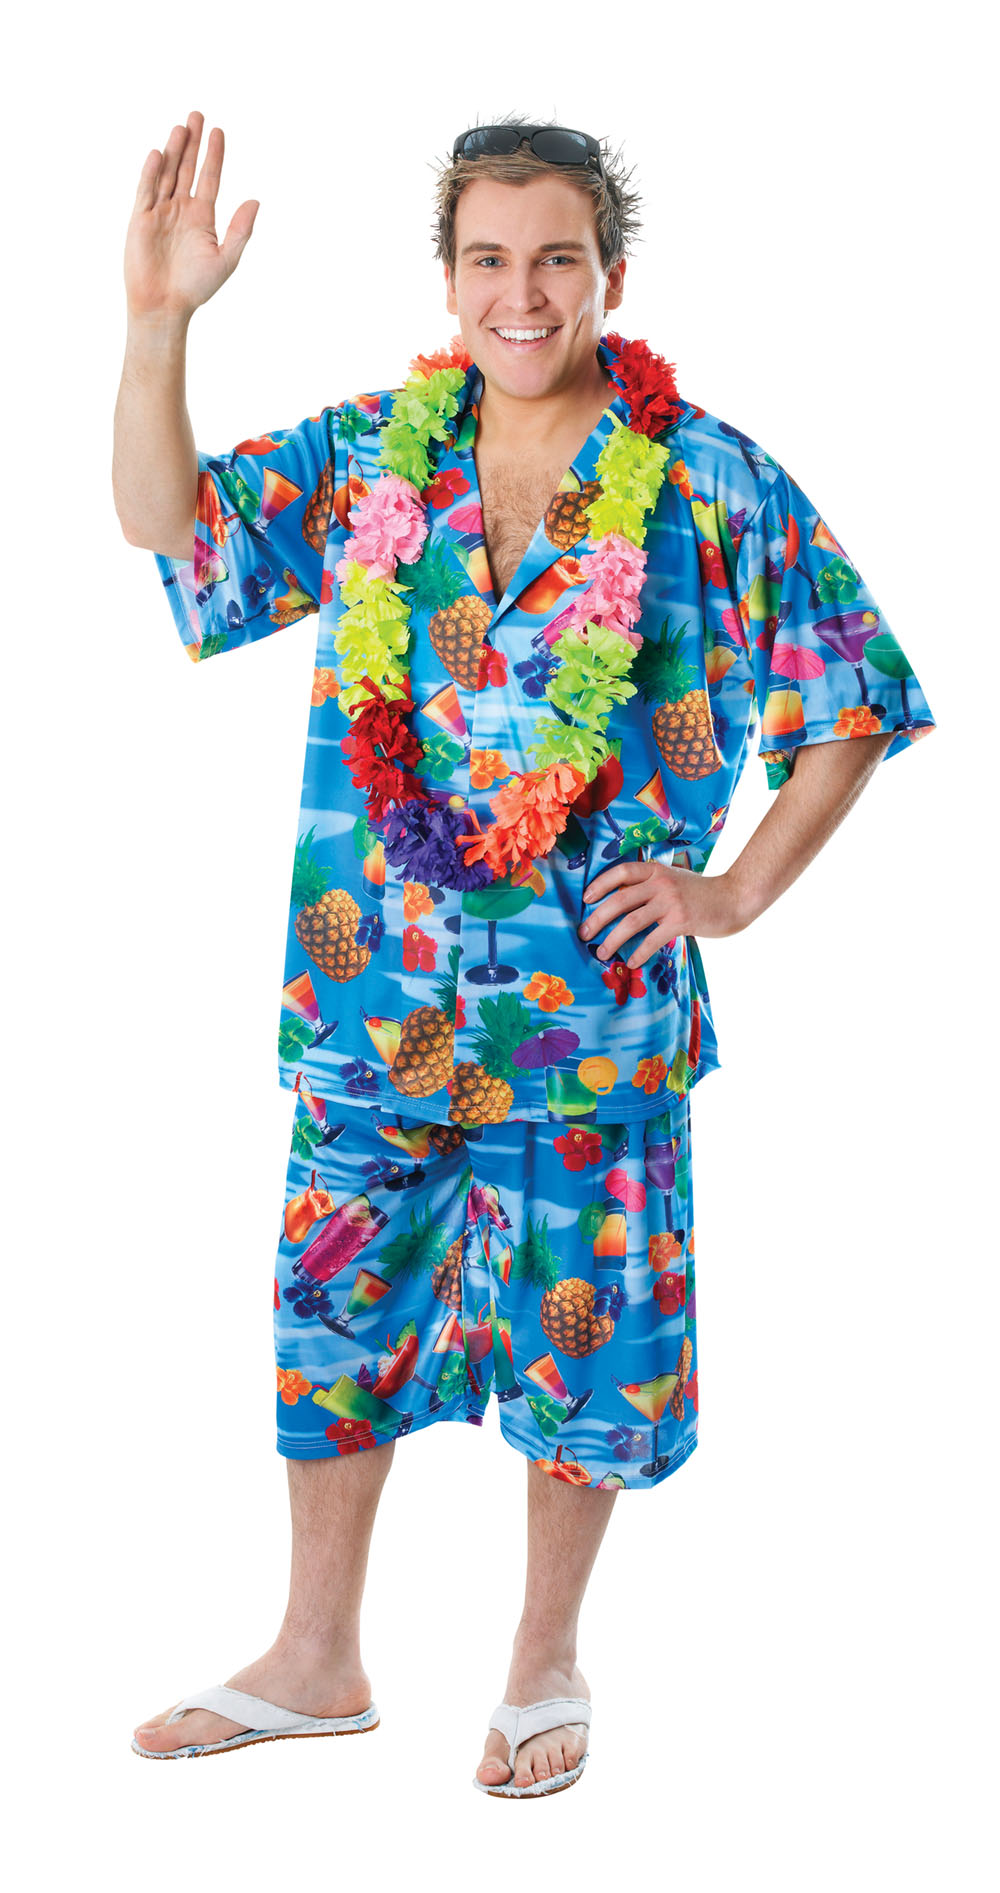 Mens XL Hawaiian Shorts u0026 Shirt Suit Fancy Dress Costume Hawaii Bright Outfit Ne | eBay